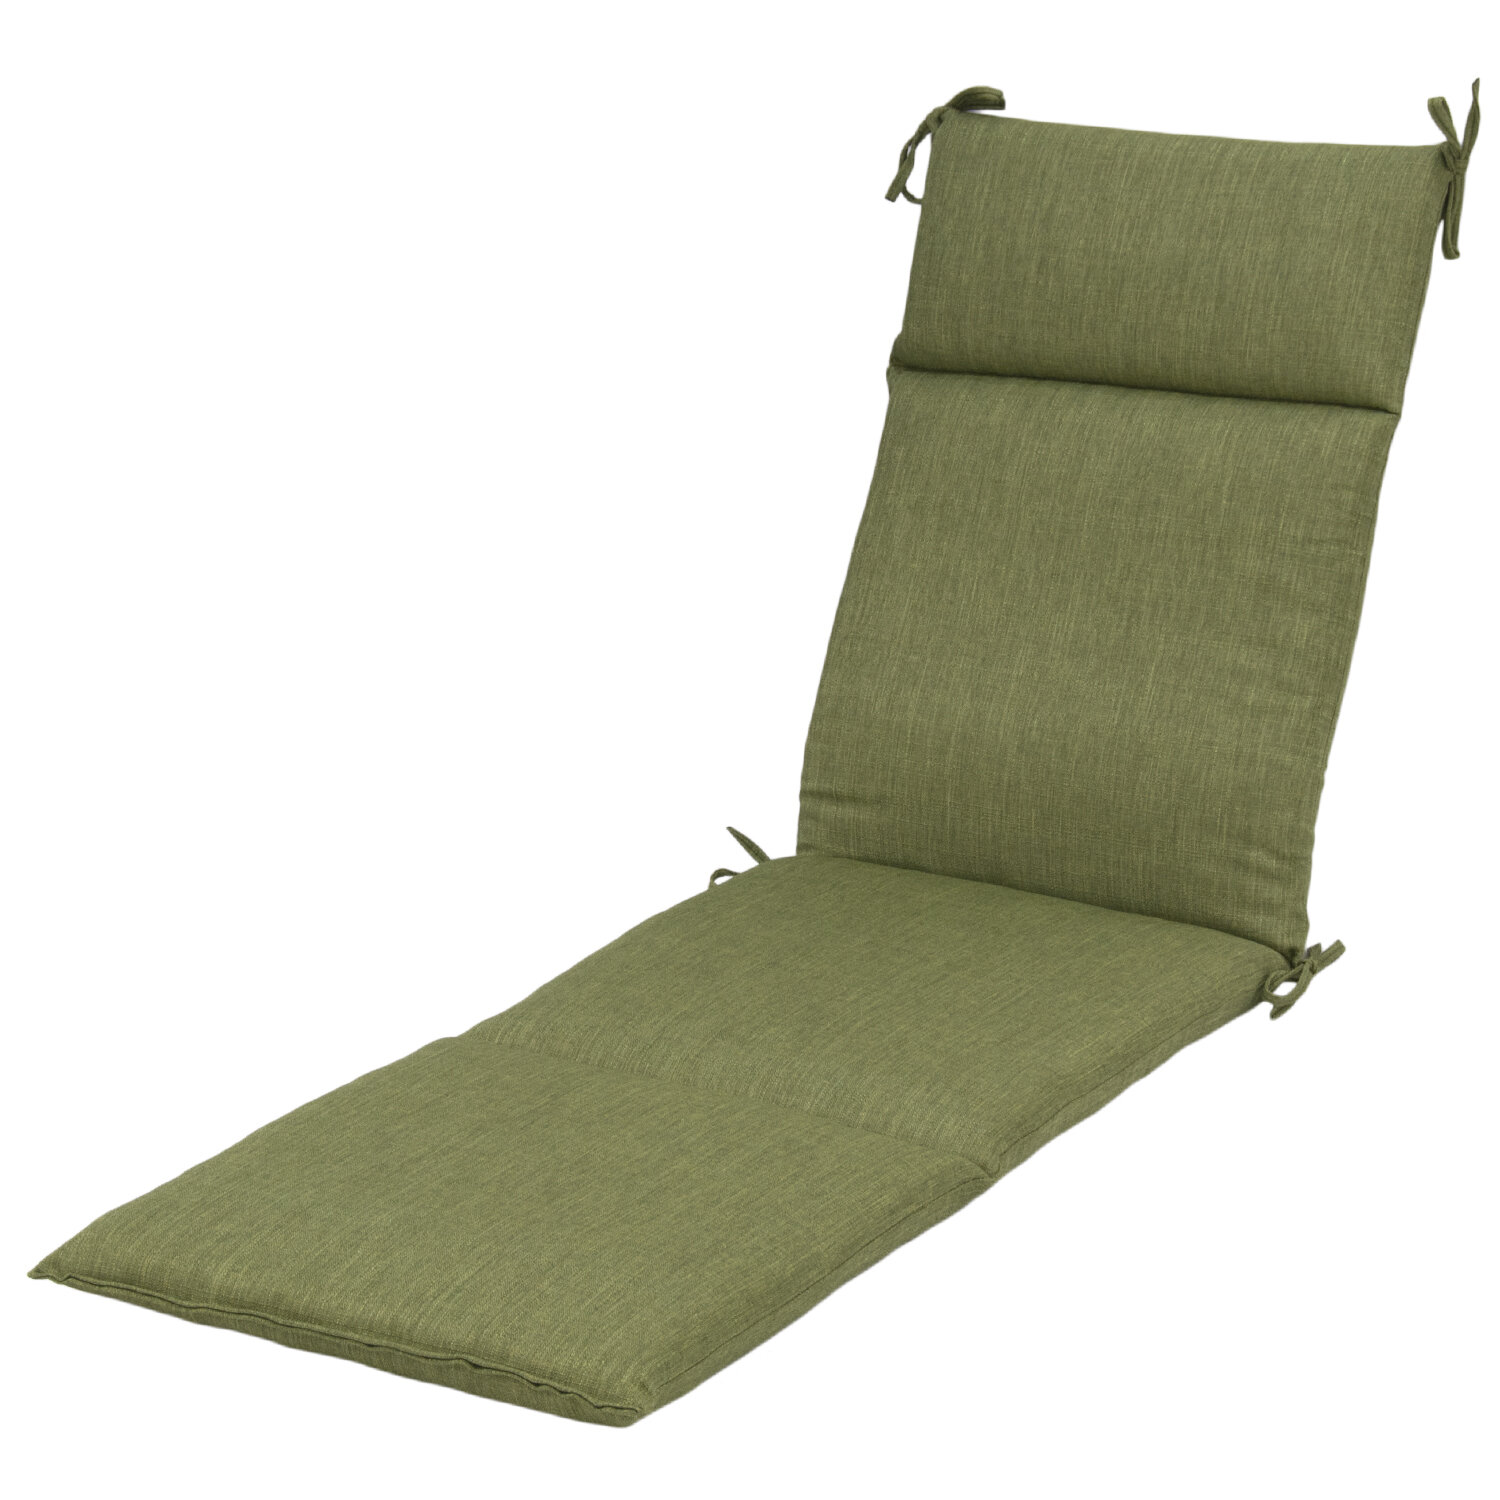 Plantation patterns outdoor chaise lounge cushion ebay for Chaise lounge cushion outdoor